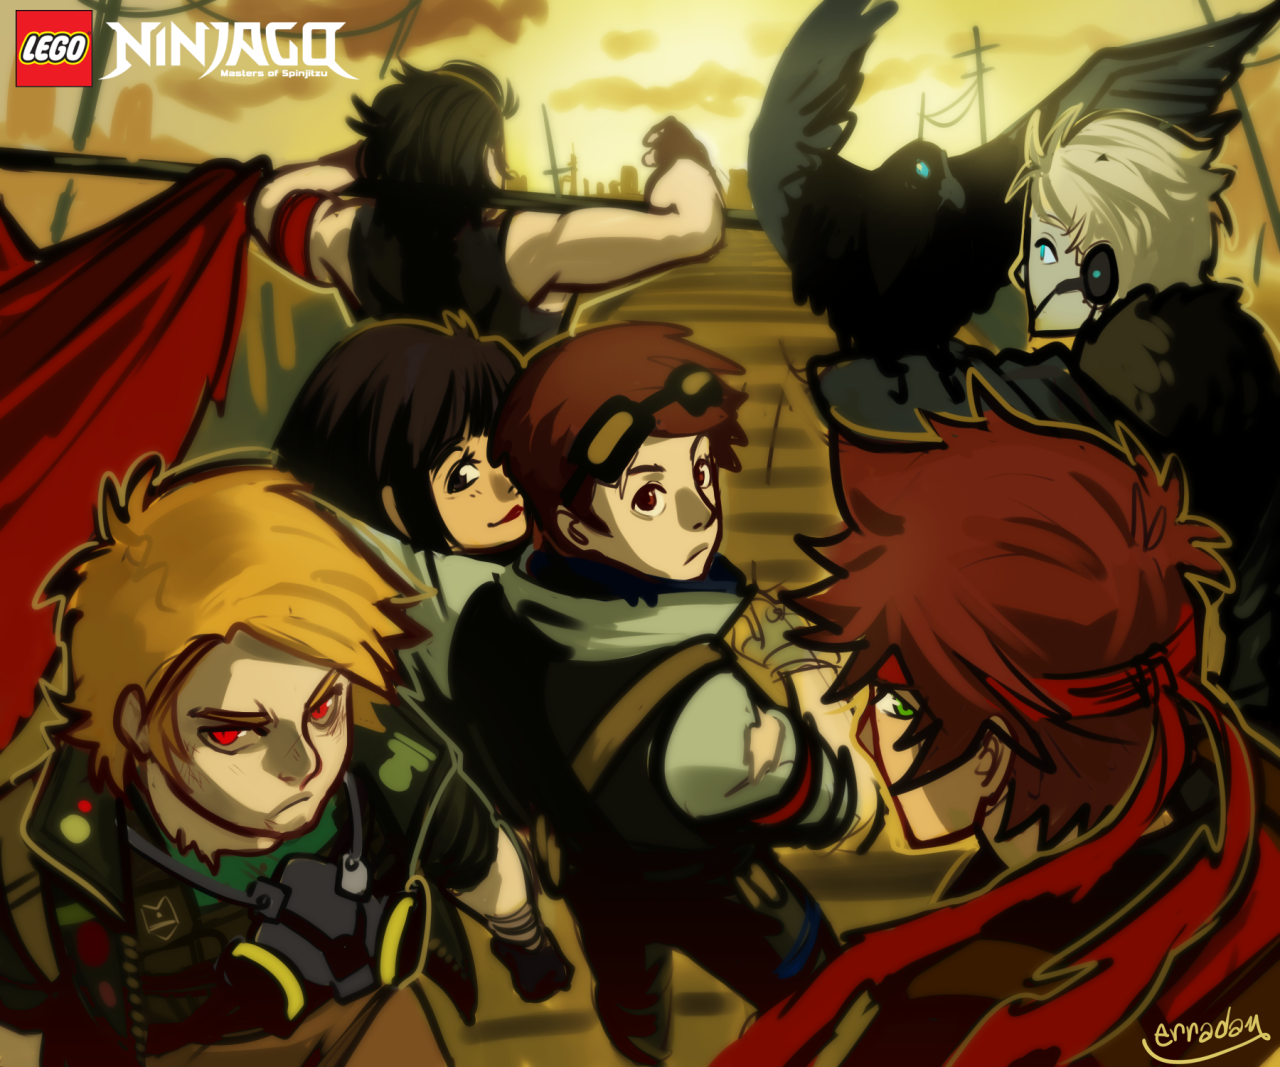 Steampunk Ninjago! By Erraday On Tumblr